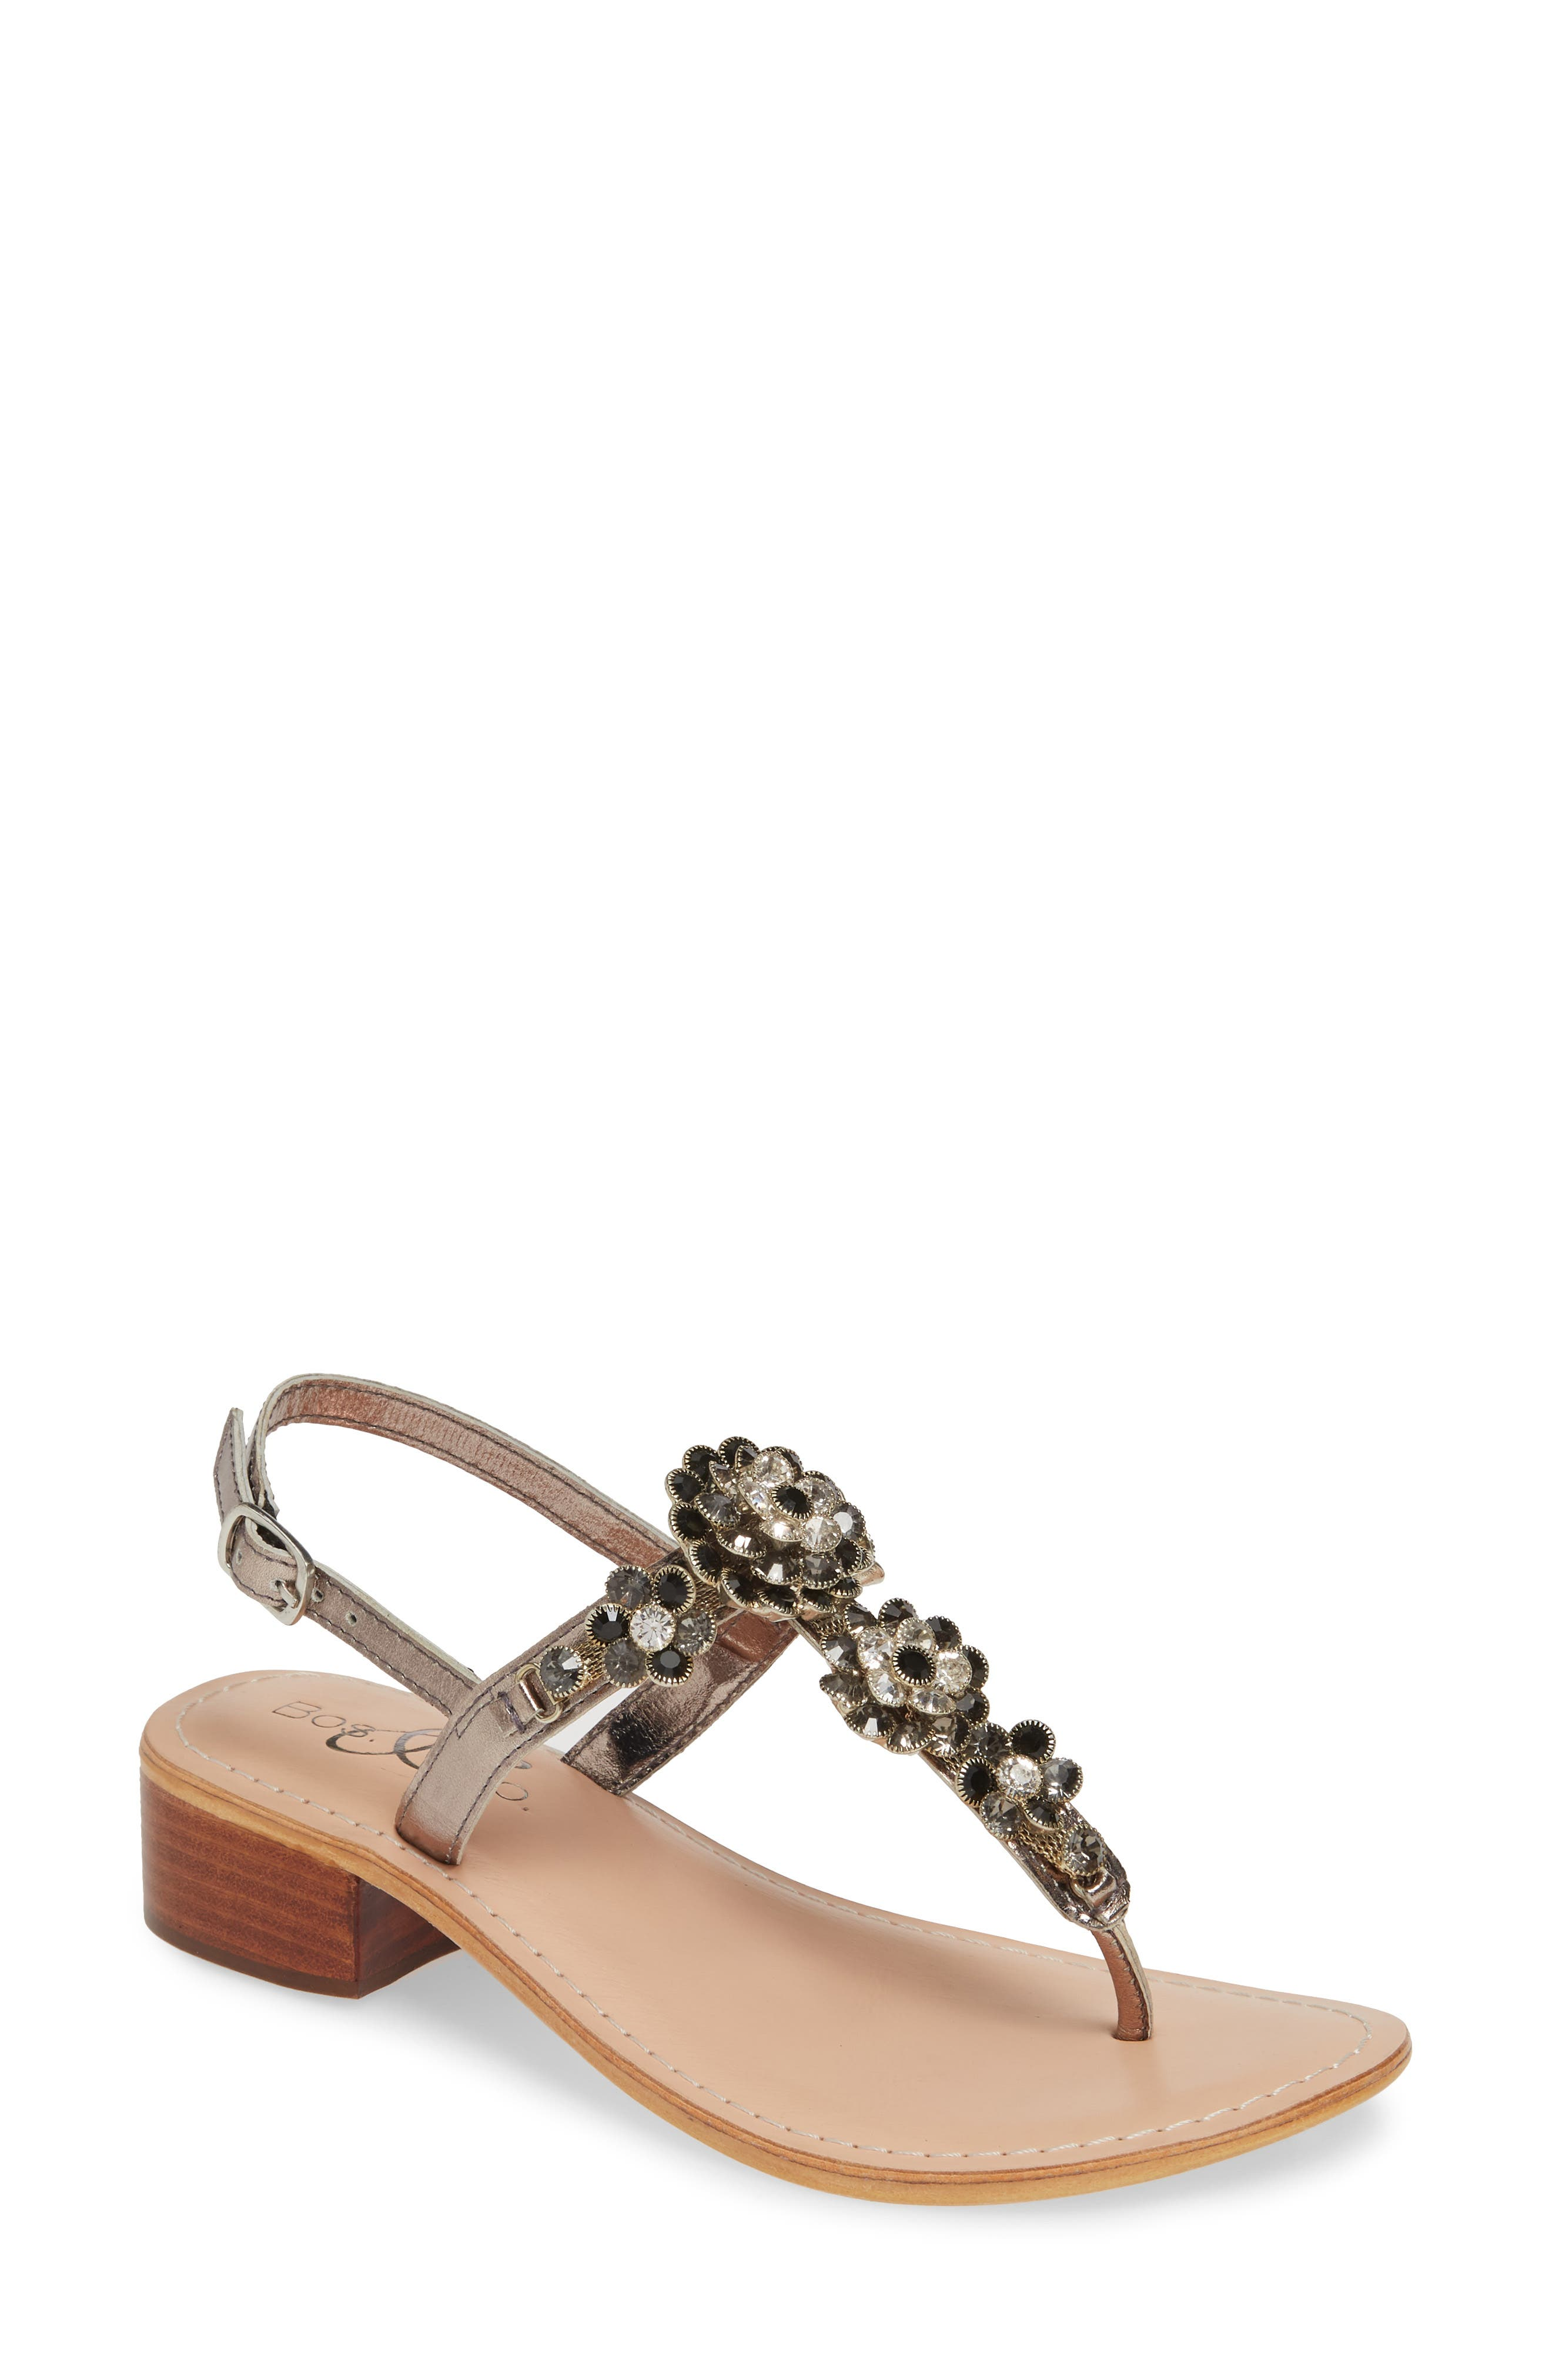 BOS. & CO.,                             Wyn Embellished Sandal,                             Main thumbnail 1, color,                             ANTHRACITE/ PEWTER LEATHER